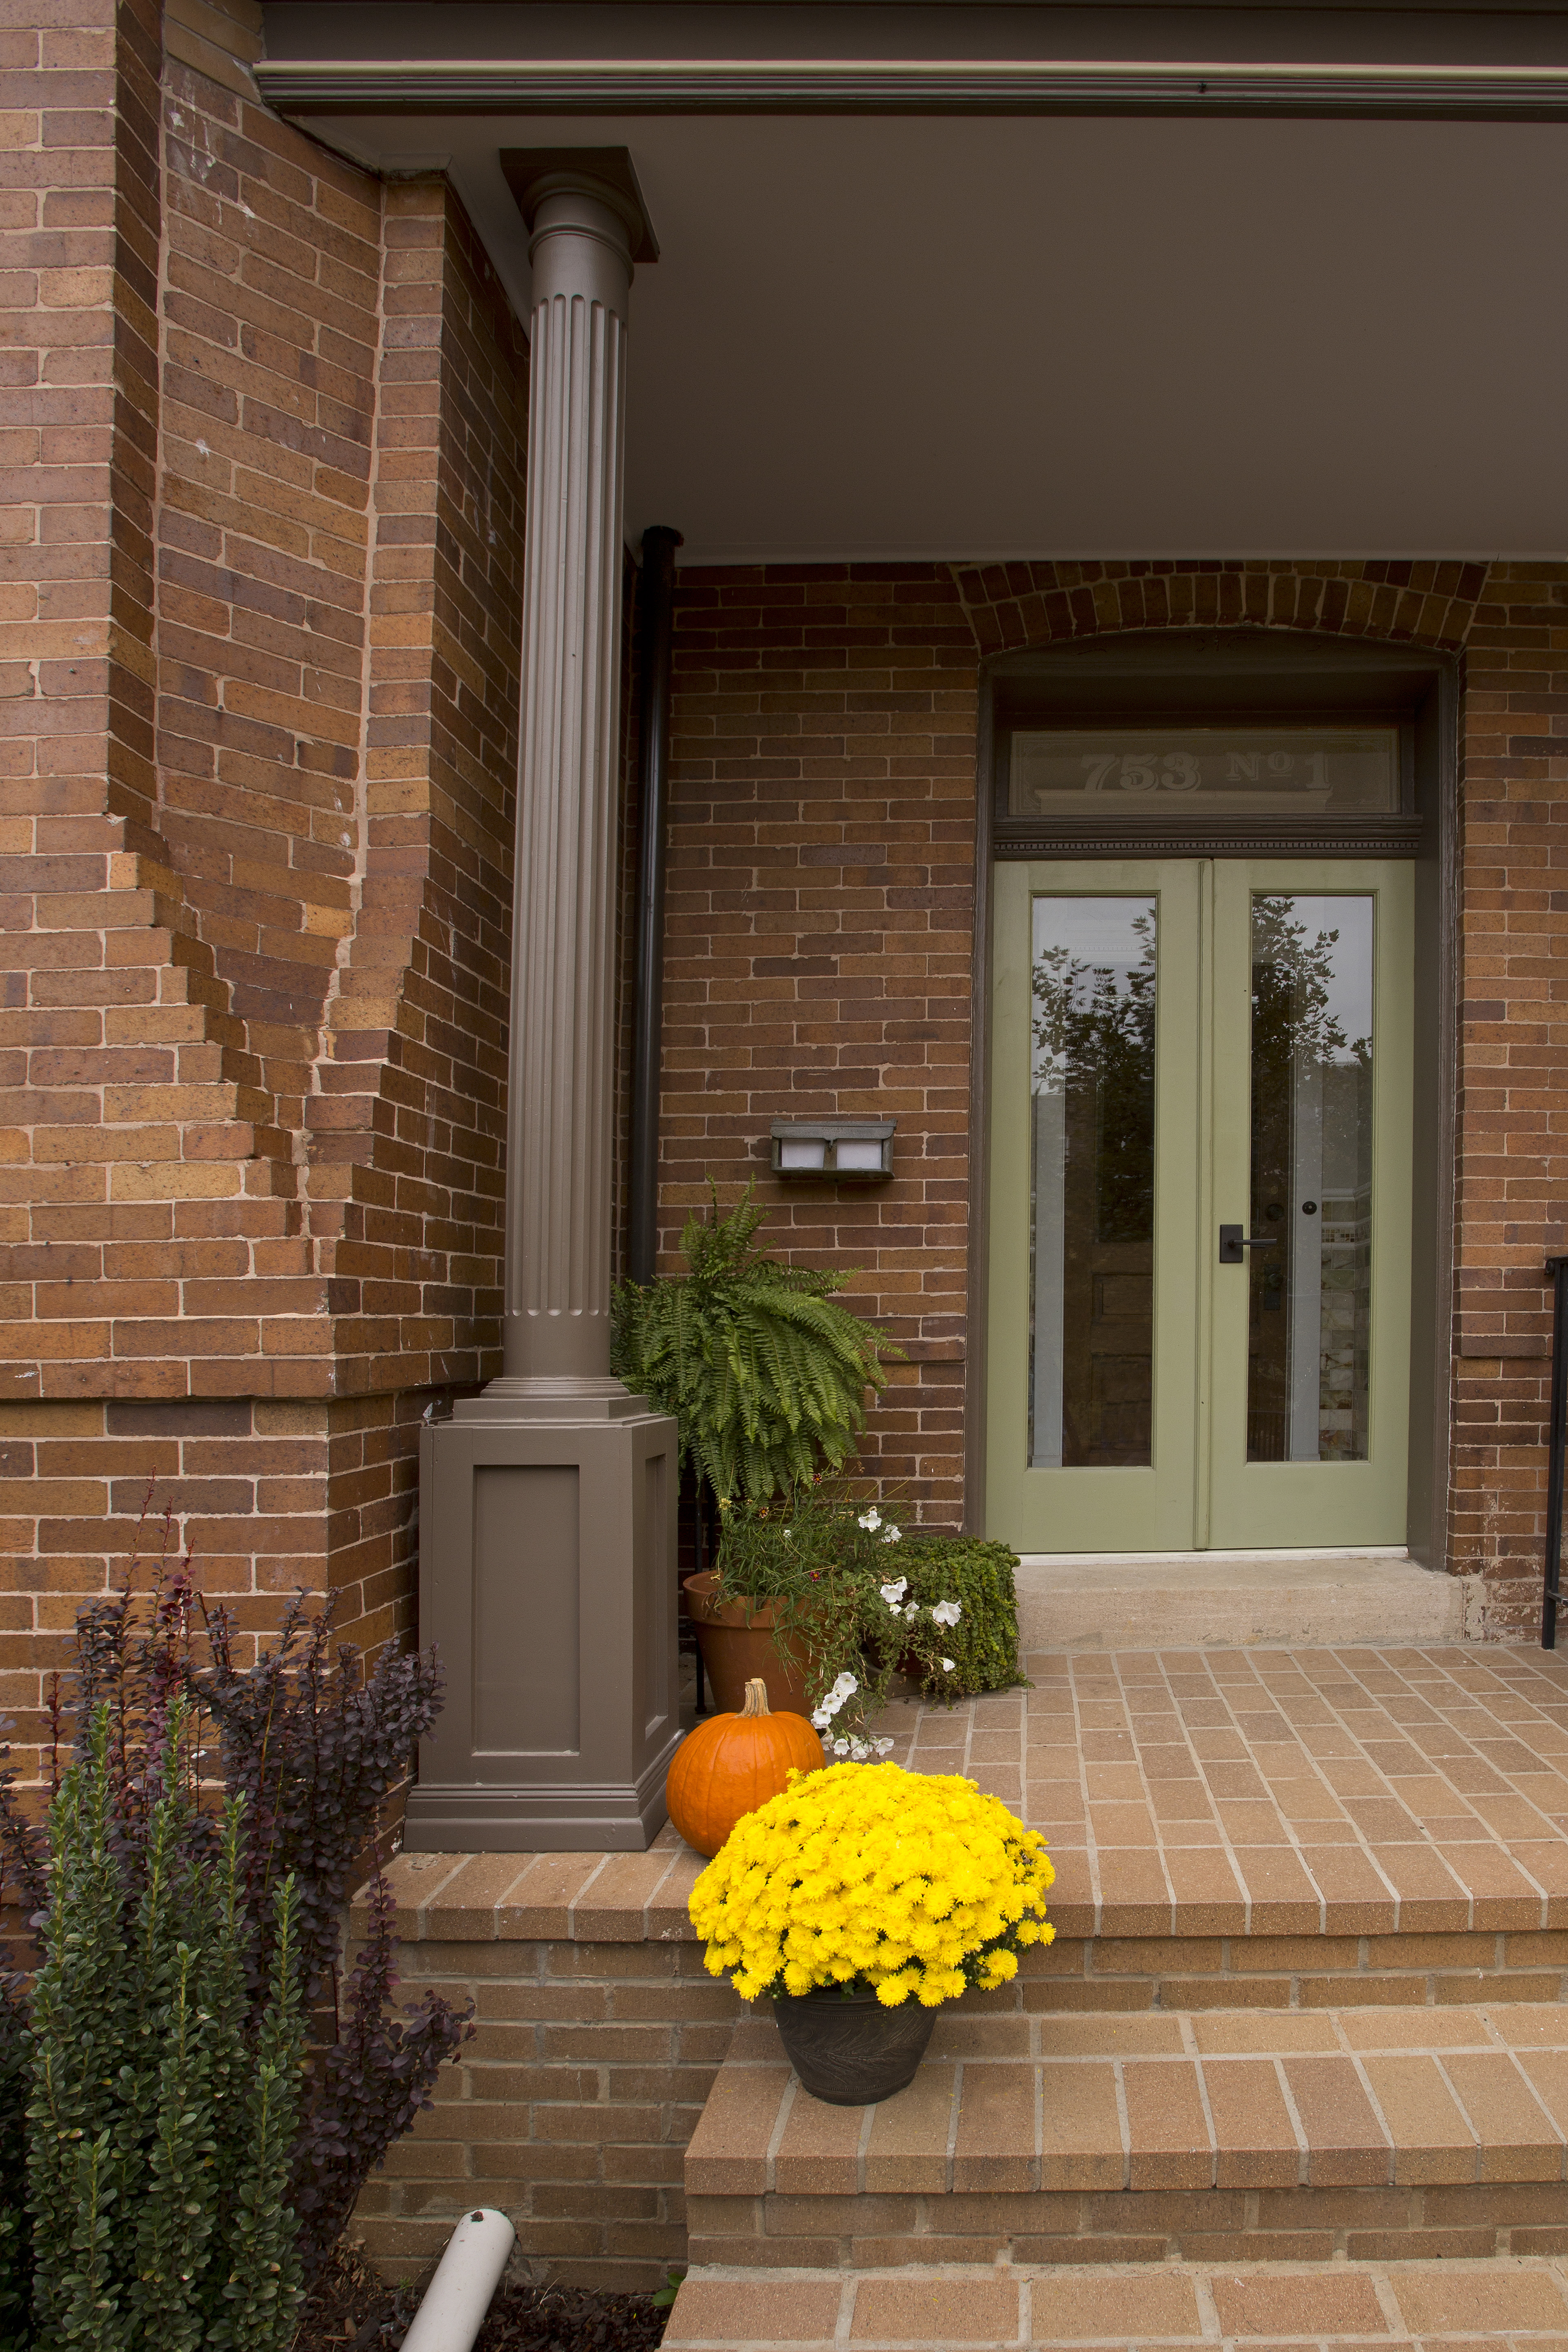 The warm stone steps up to the condos are decorated with bright fall flowers and other plants.